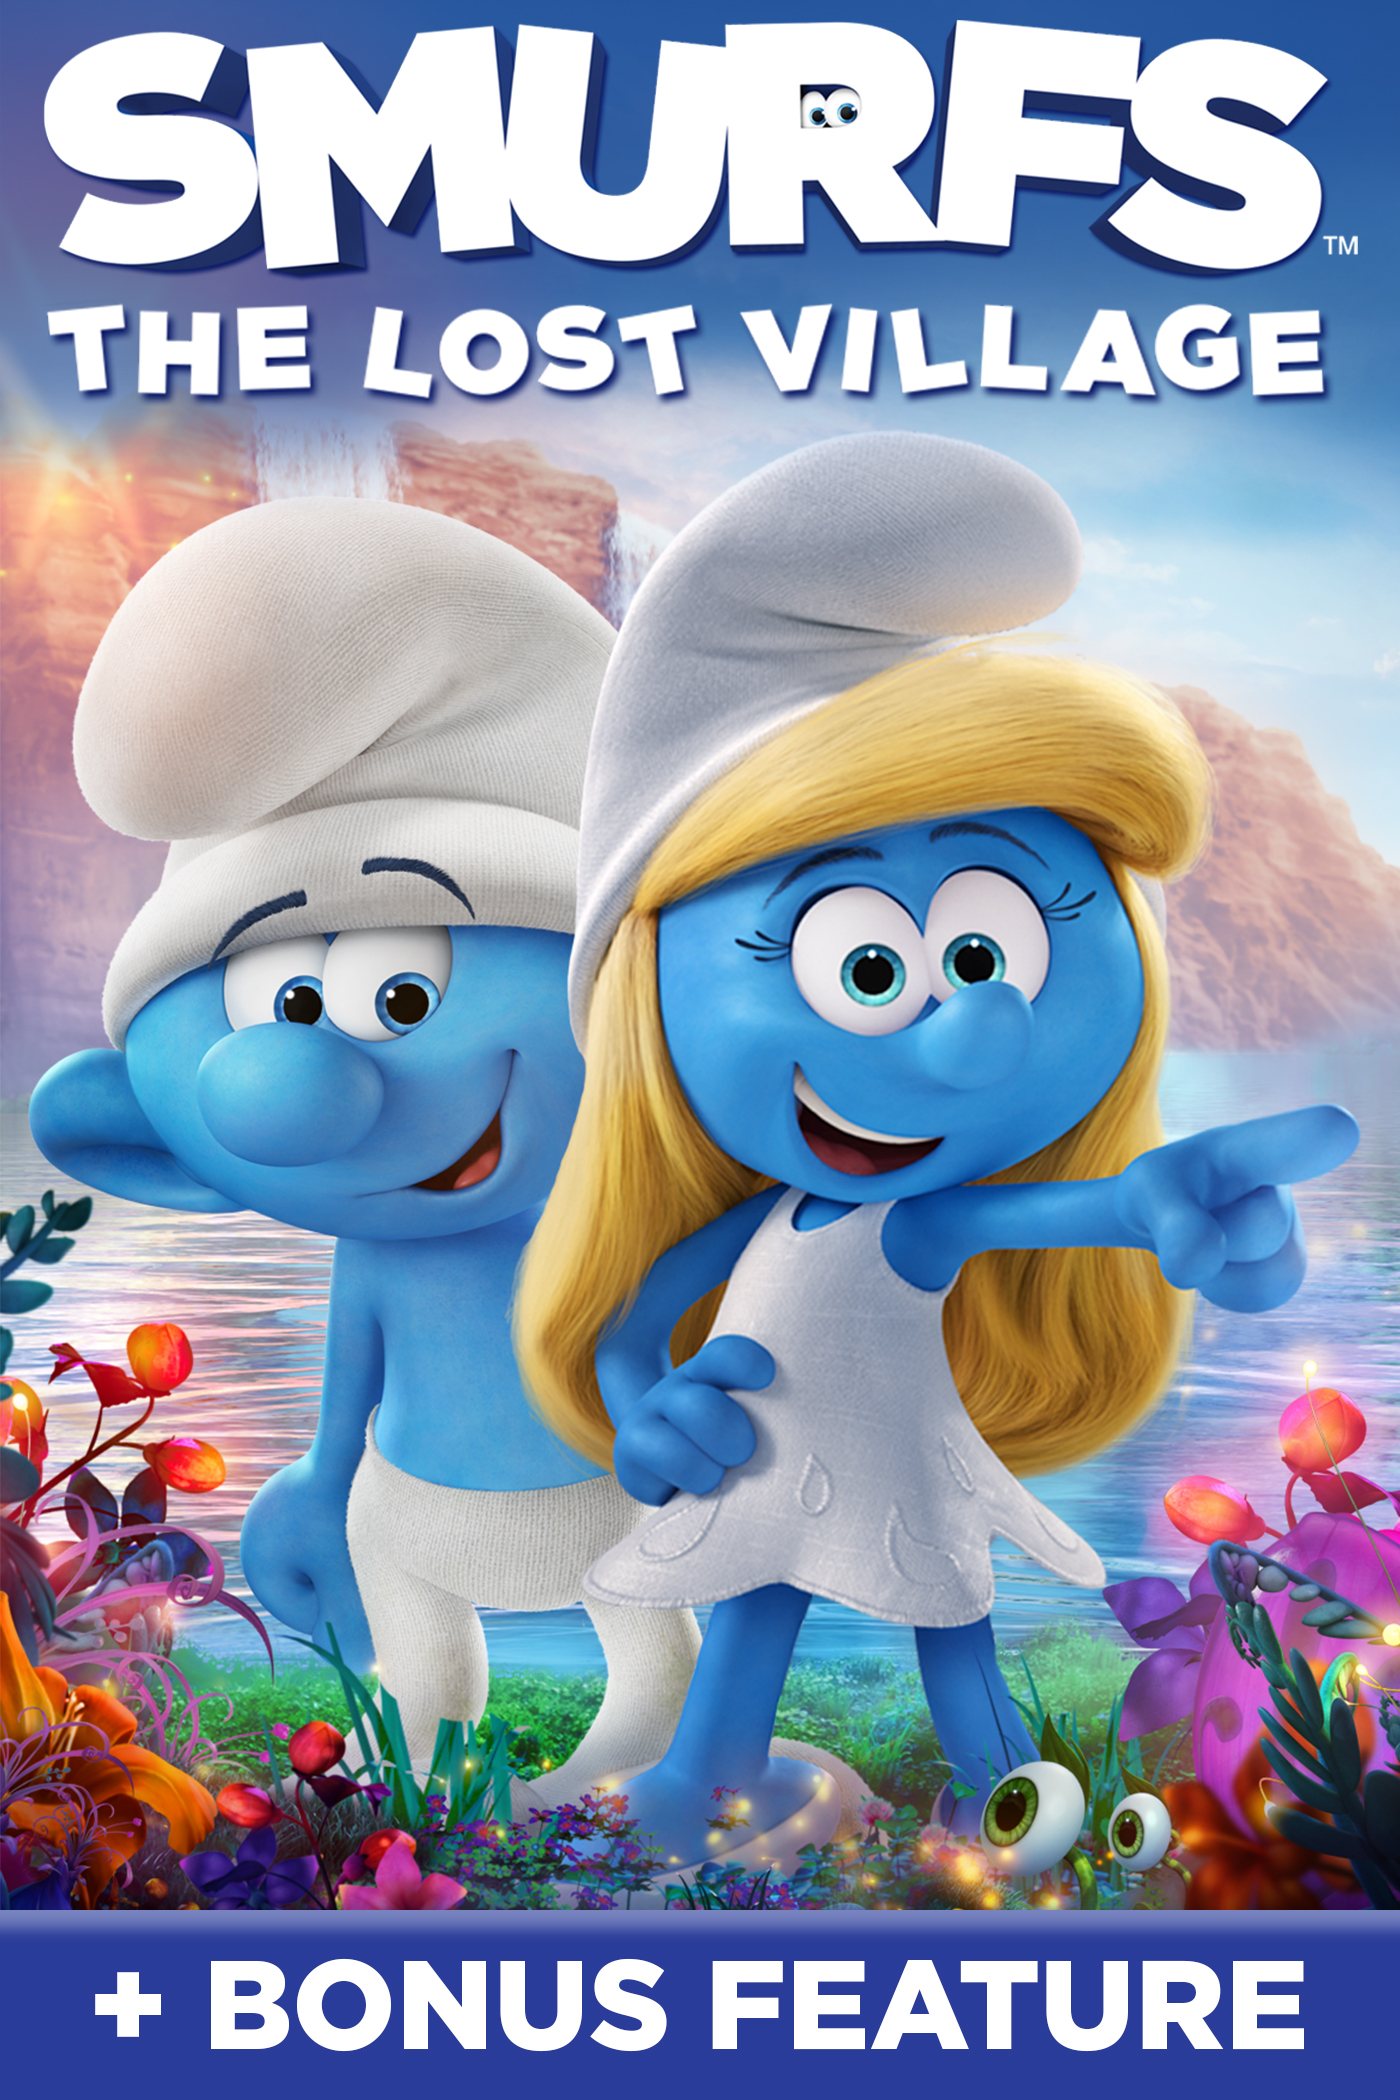 Smurfs The Lost Village + Bonus